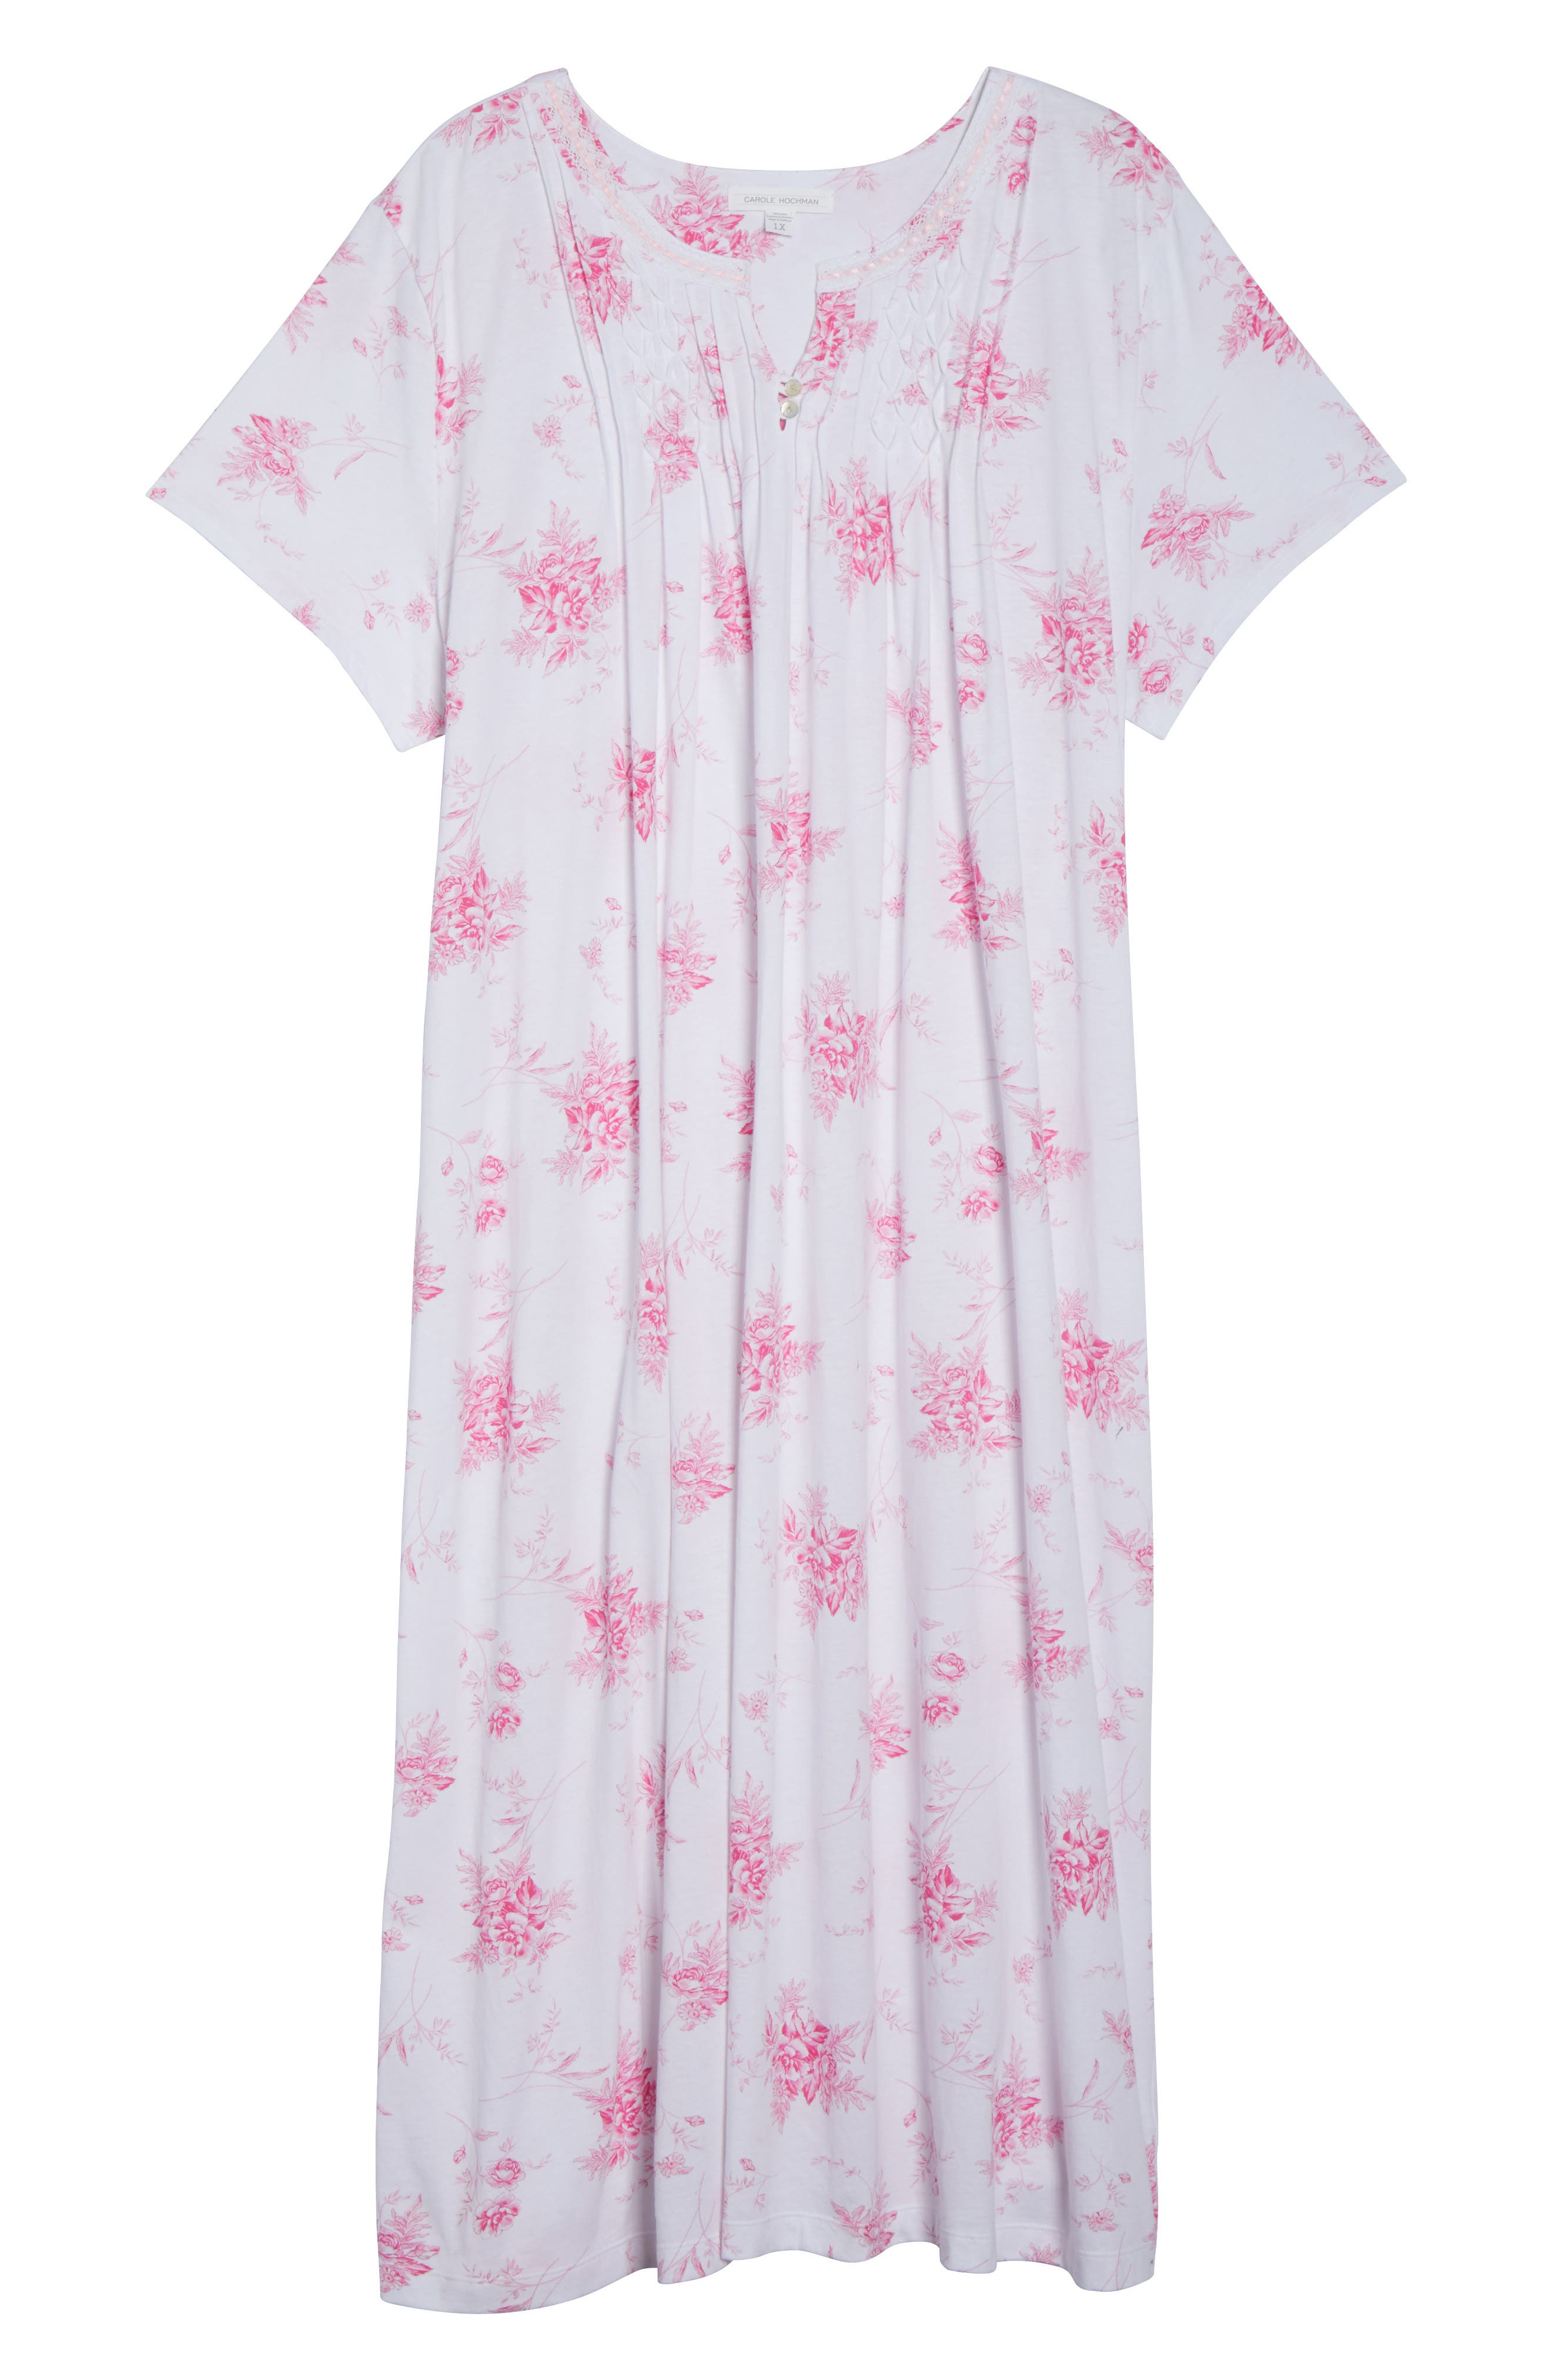 Cotton Jersey Long Nightgown,                             Alternate thumbnail 4, color,                             Bouquet Swing